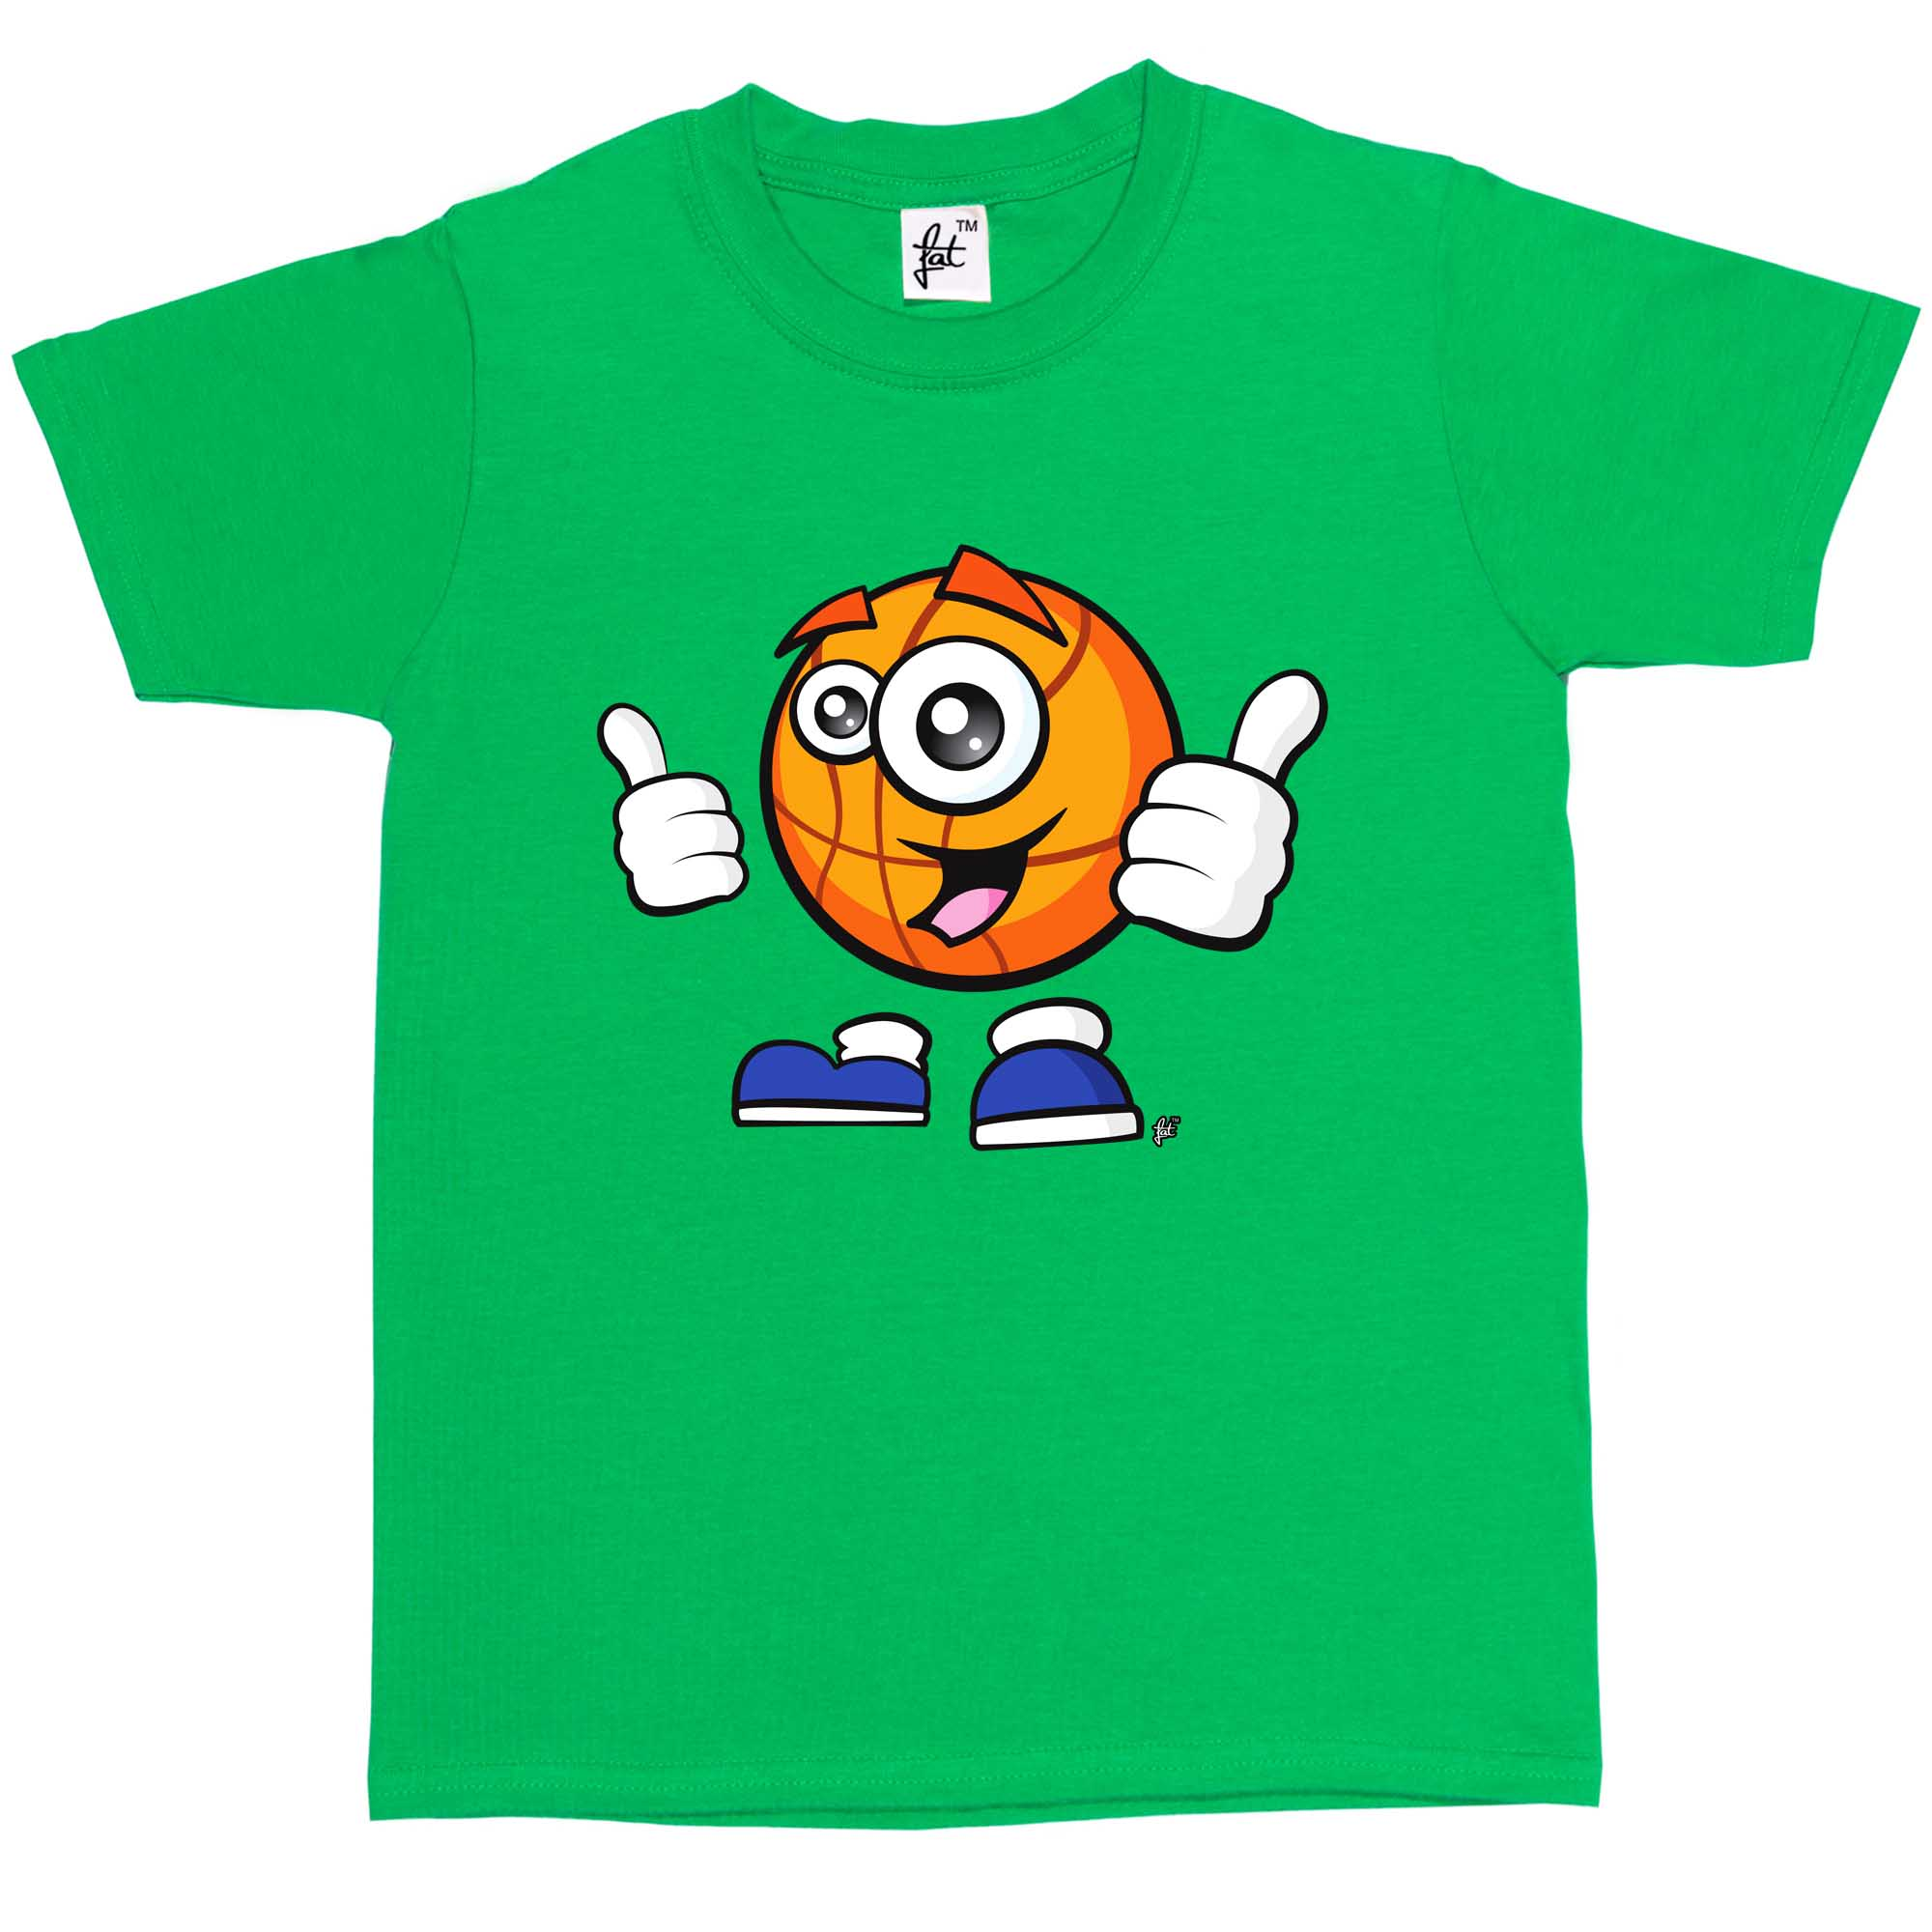 Sporticon Happy Basketball Thumbs Up Ready To Play Kids Boys T-Shirt